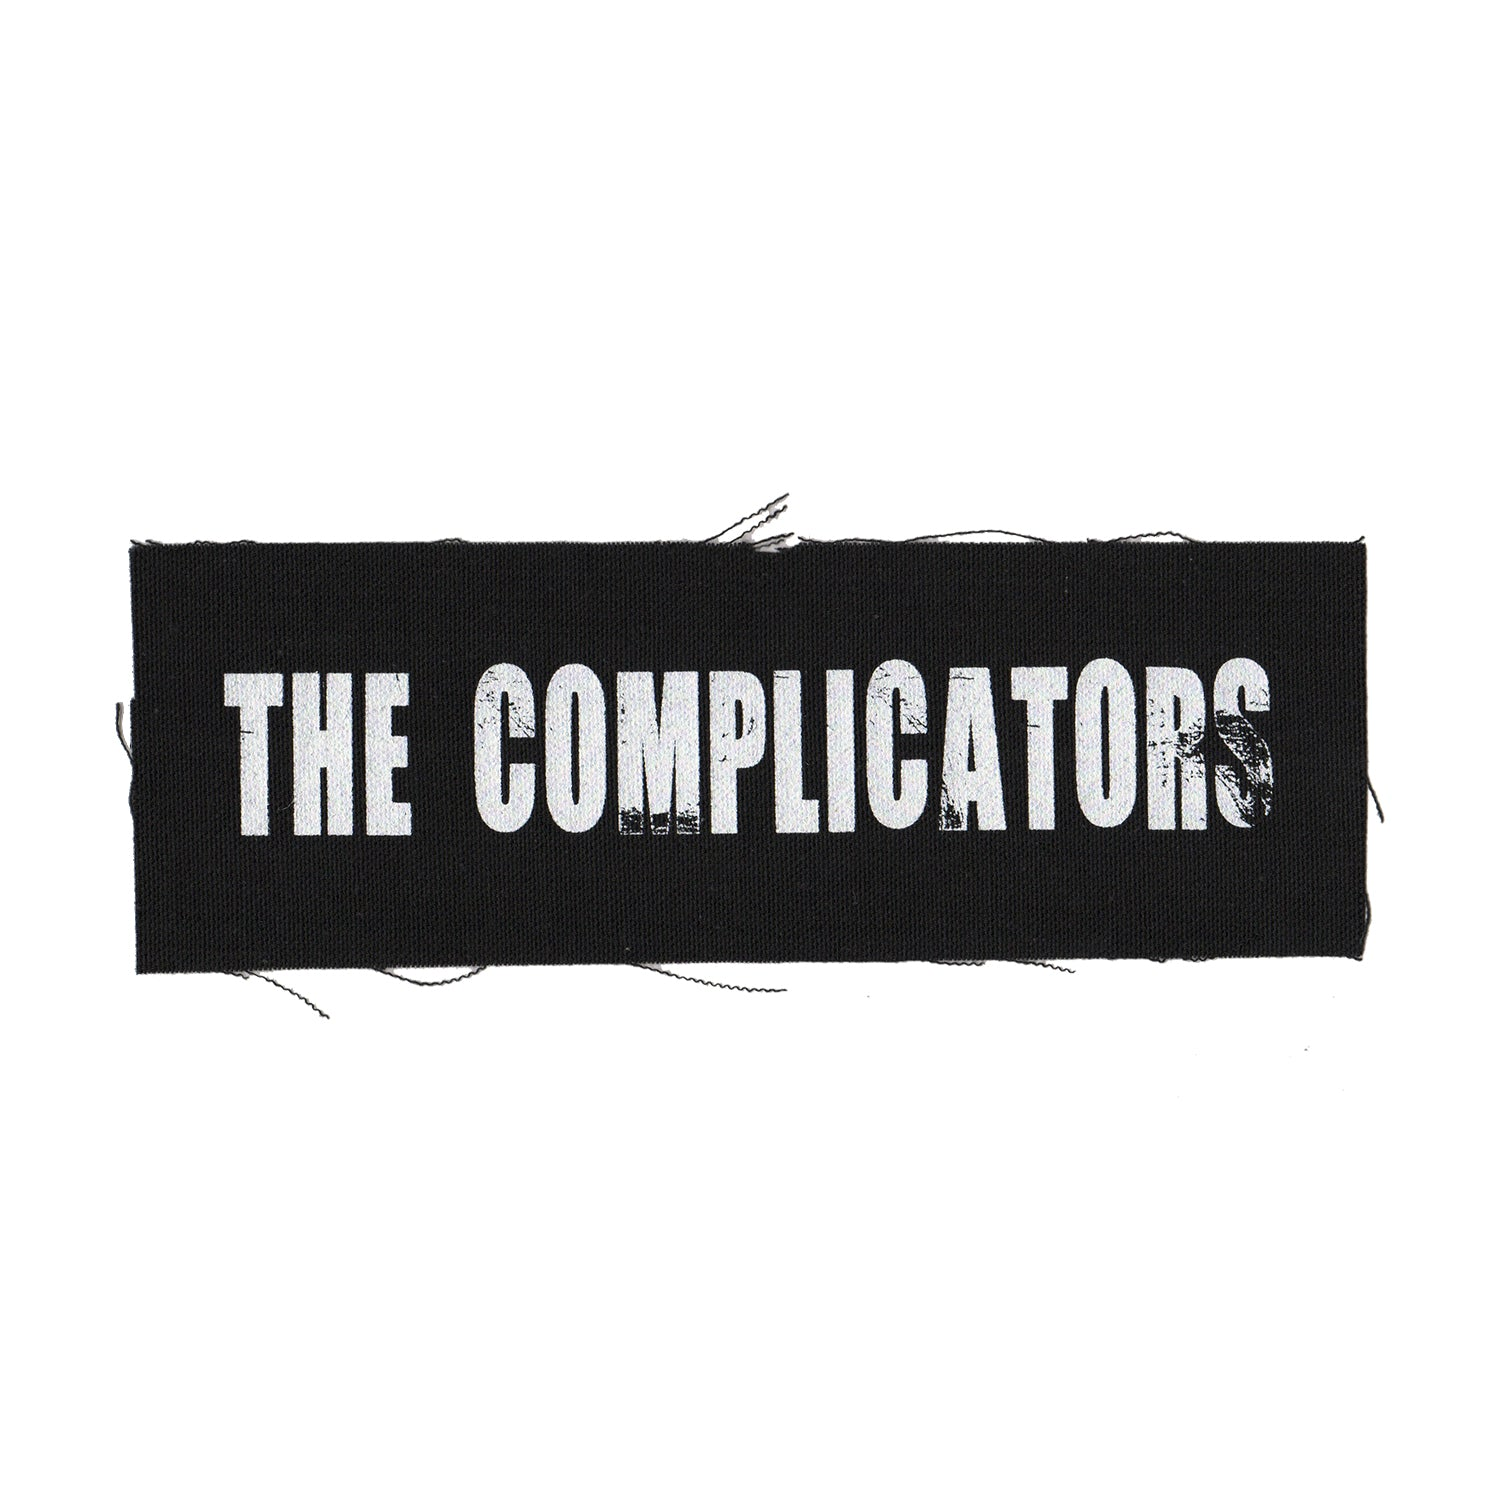 "The Complicators - Text Logo - Black - Patch - Cloth - Screenprinted - 8"" x 3"""